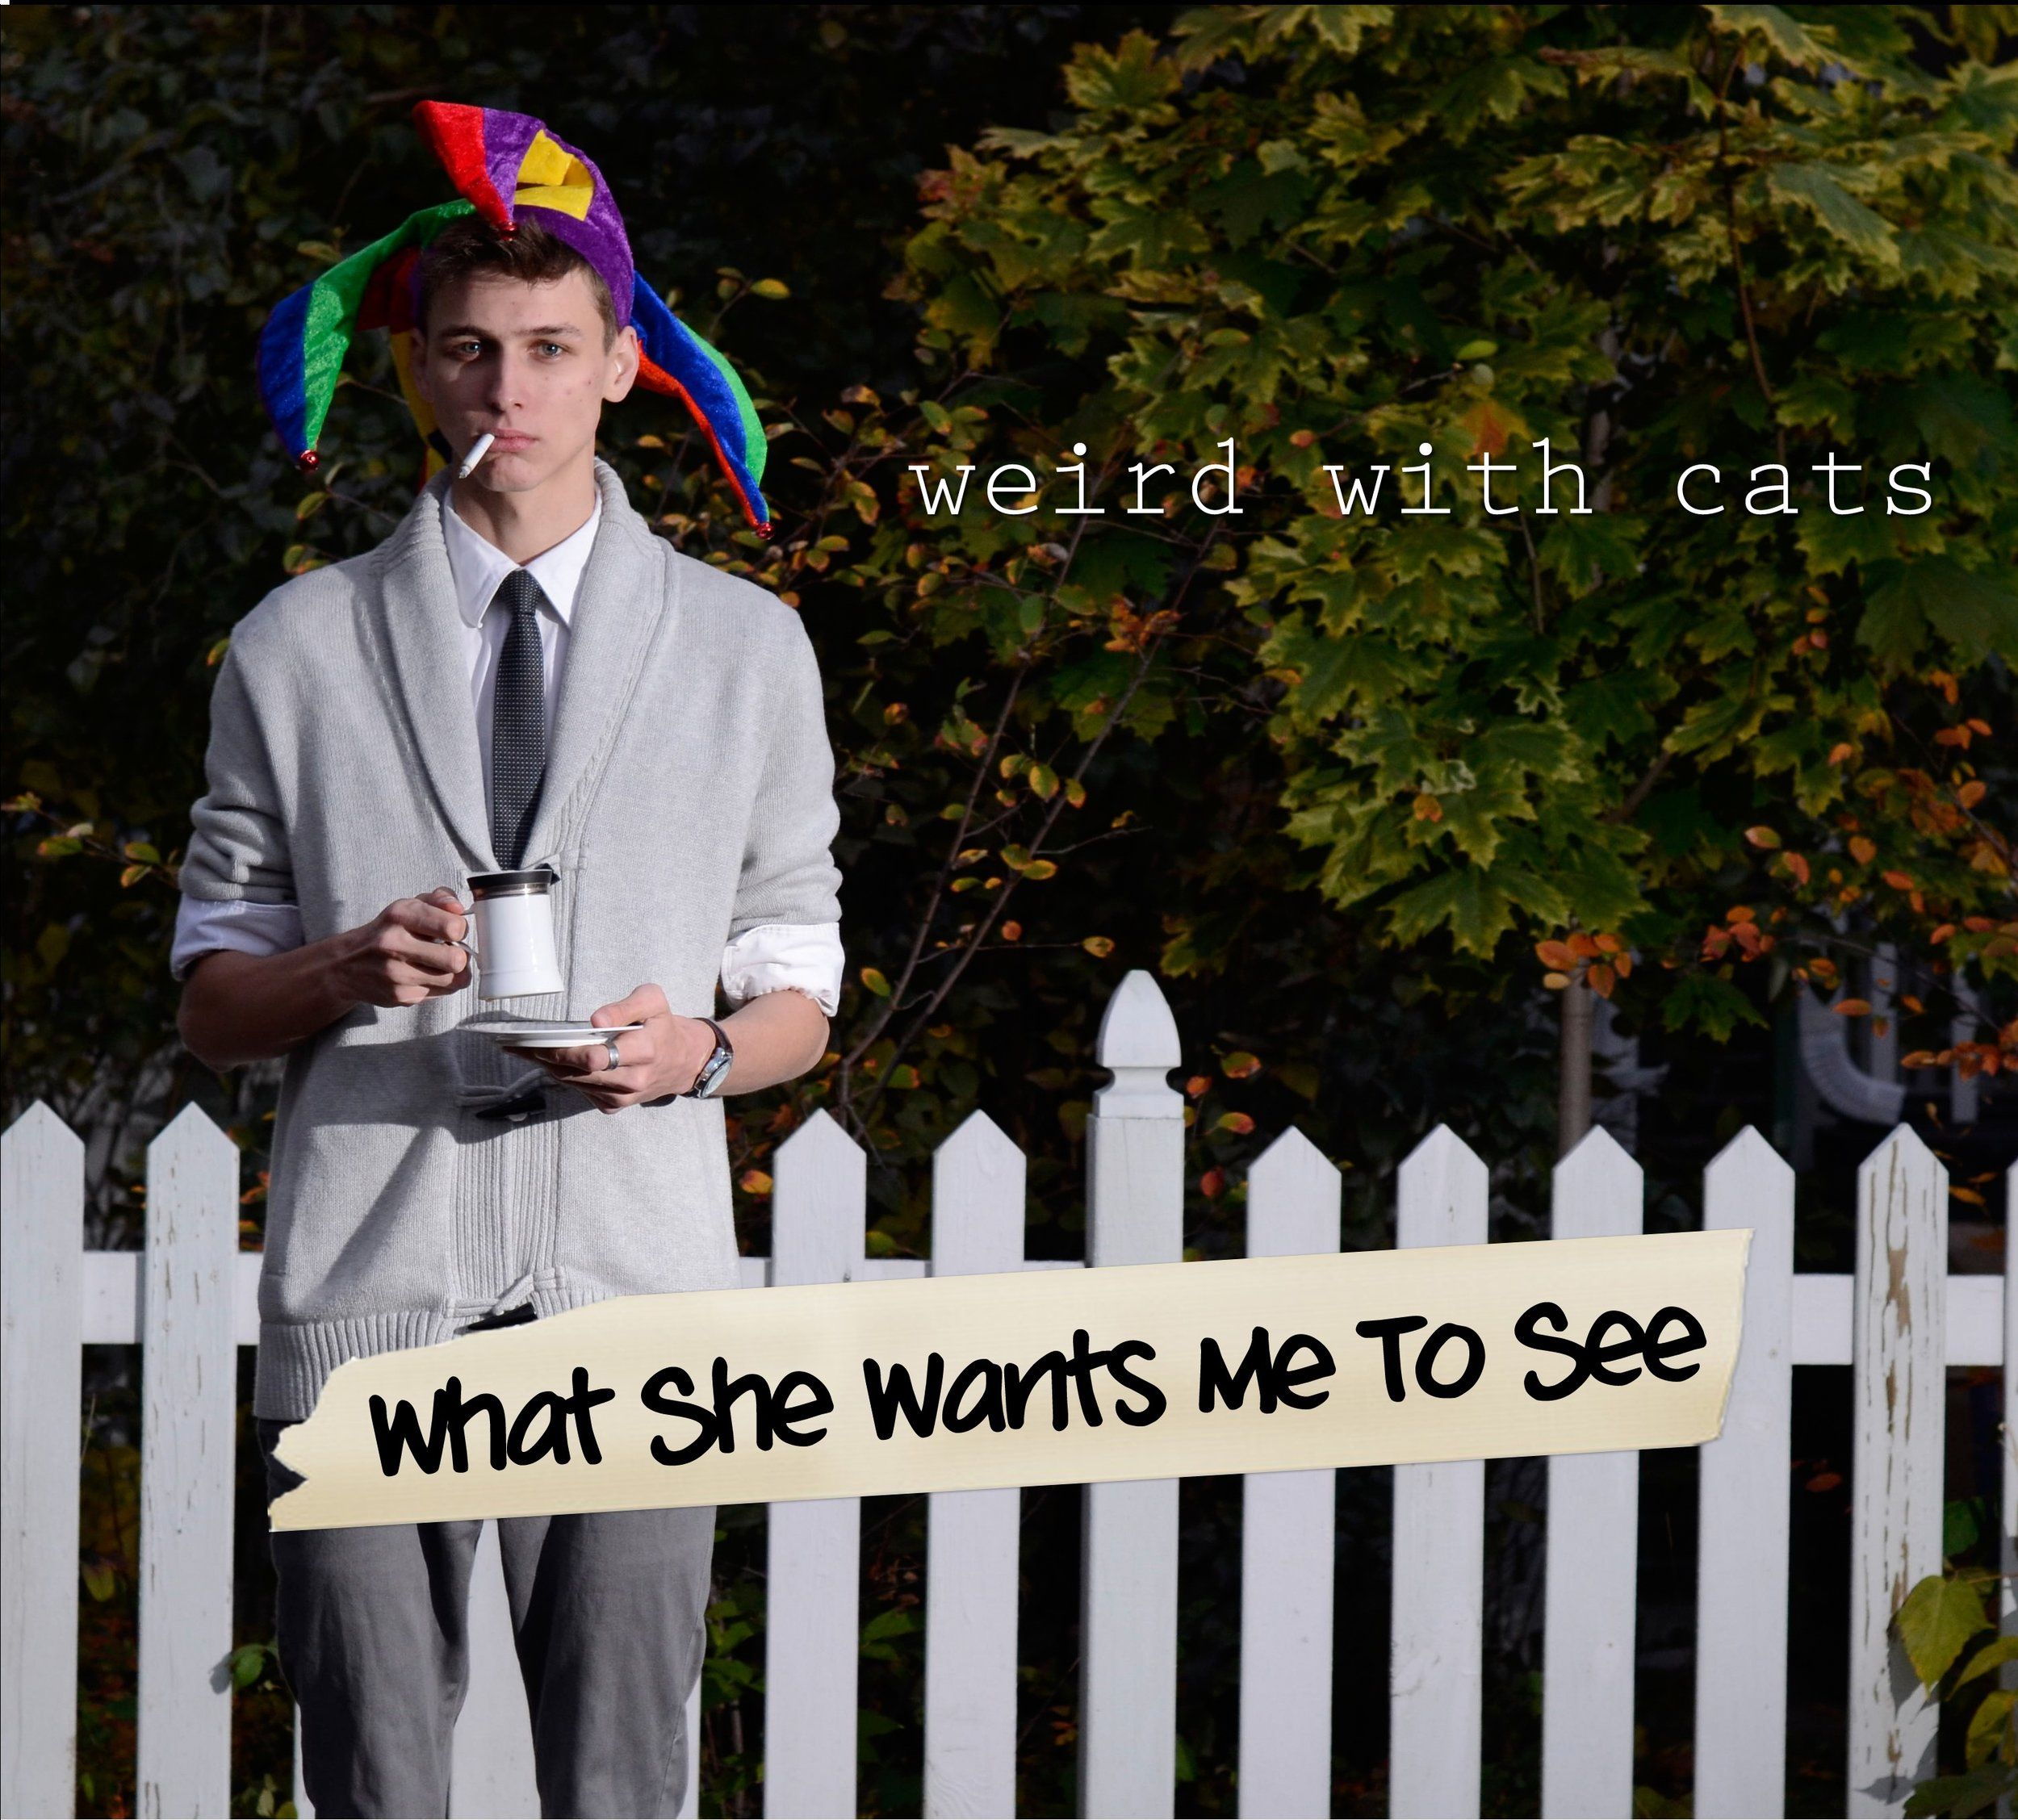 What She Wants Me To See - Weird With Cats